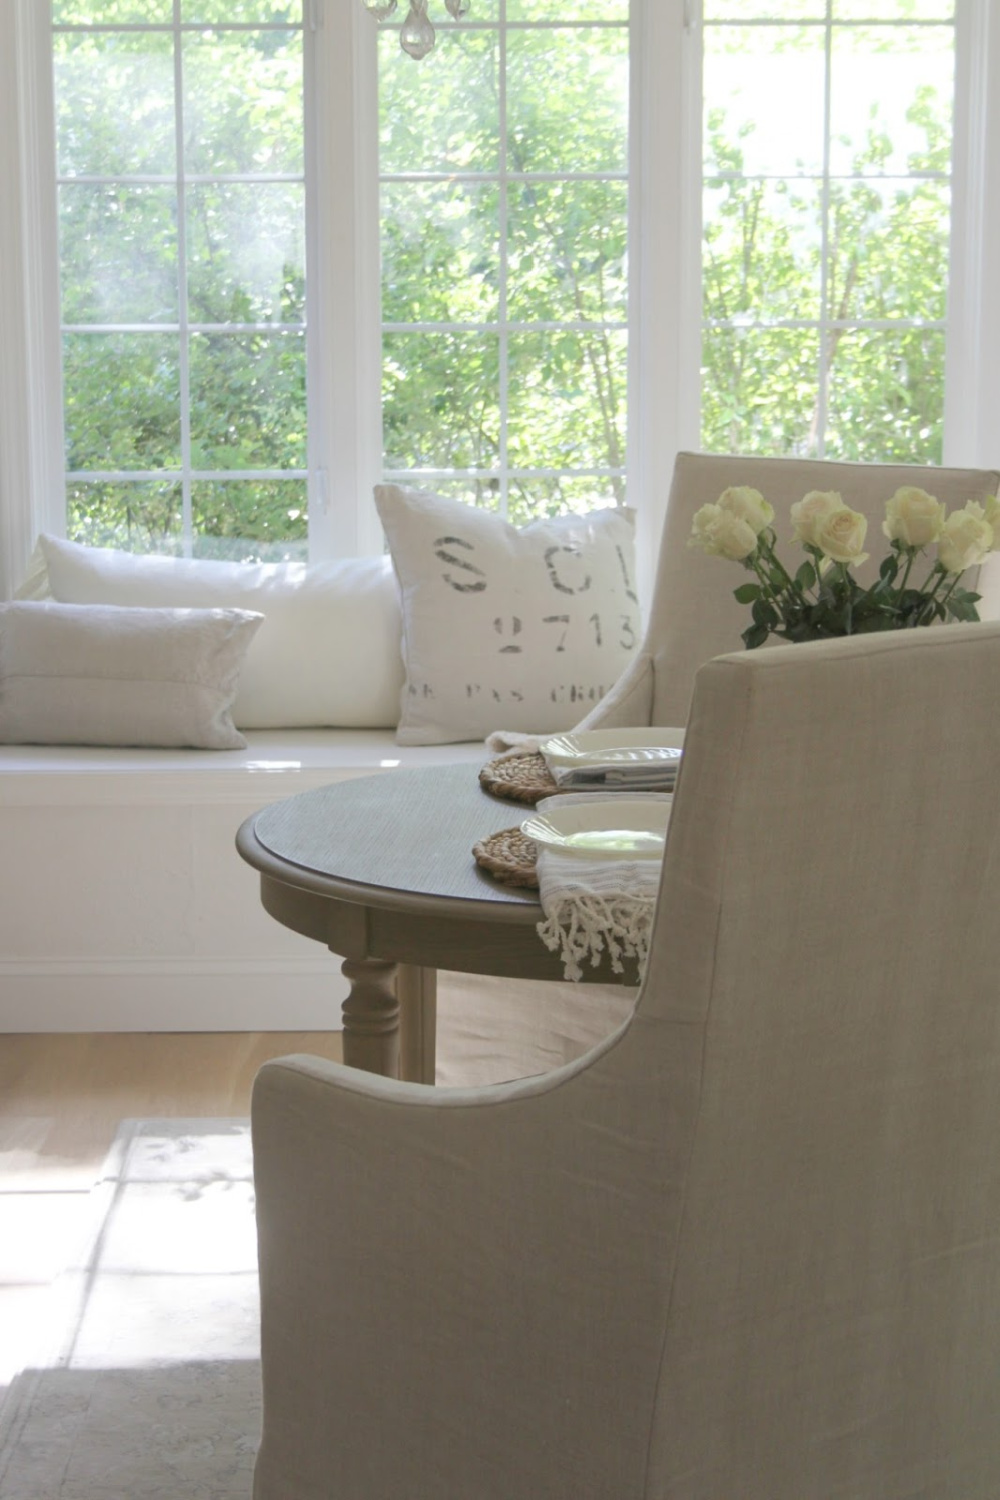 Window seat with linen pillows in a soft, serene, romantic kitchen by Hello Lovely Studio. Come score ideas for a Timeless and Tranquil European Country Inspired Look. #europeancountry #interiordesign #frenchcountry